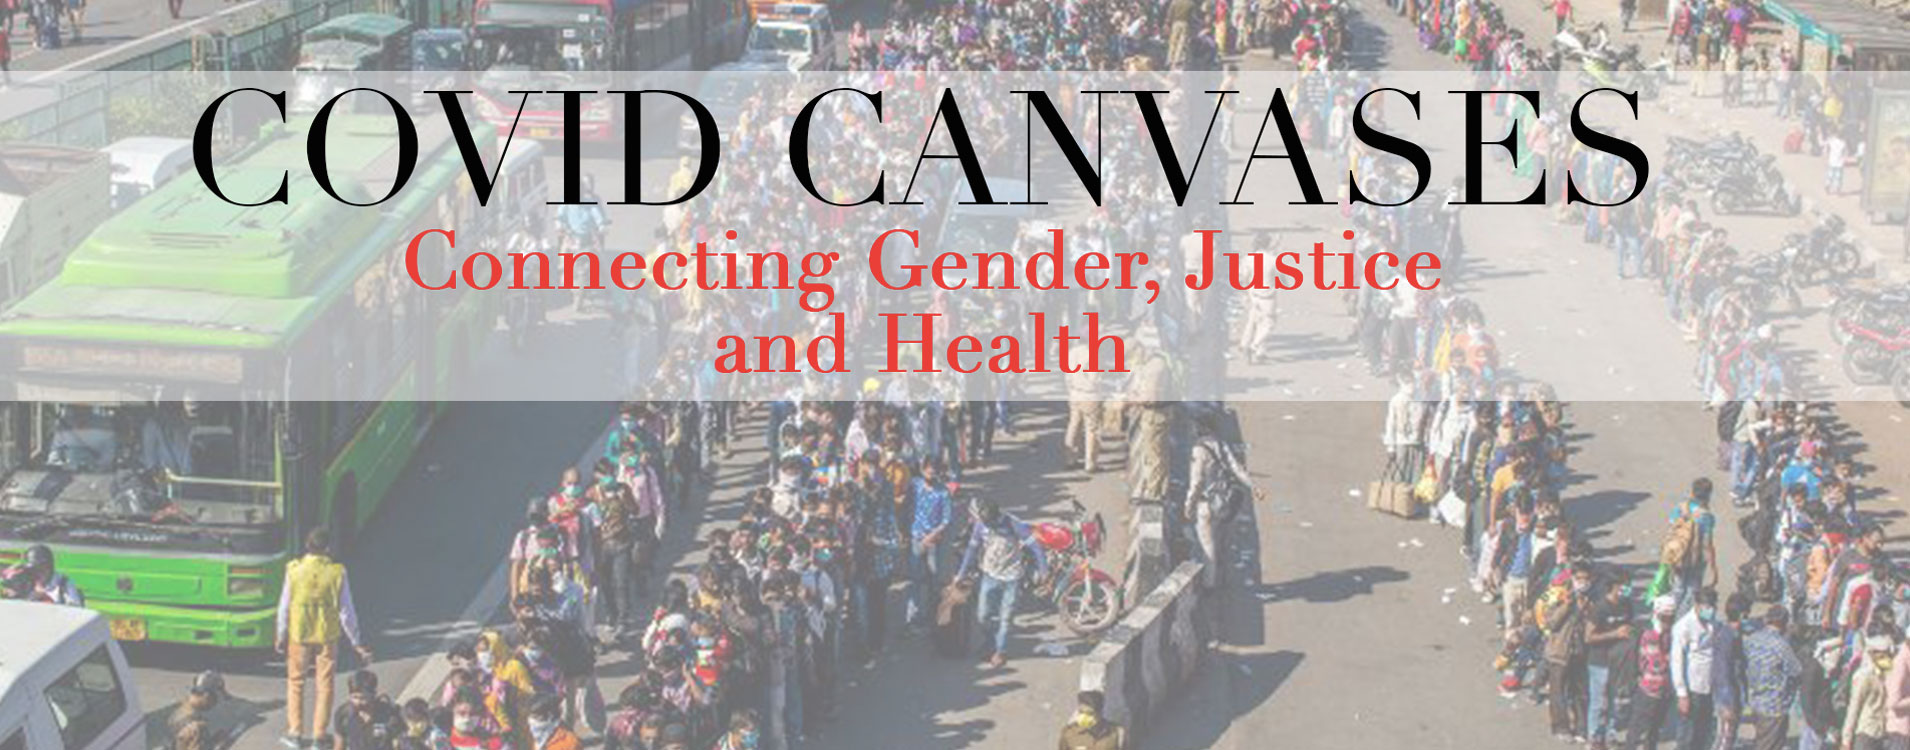 Access policy, guidelines, protocols on health, and other relevant economic, social and ethical issues around COVID-19